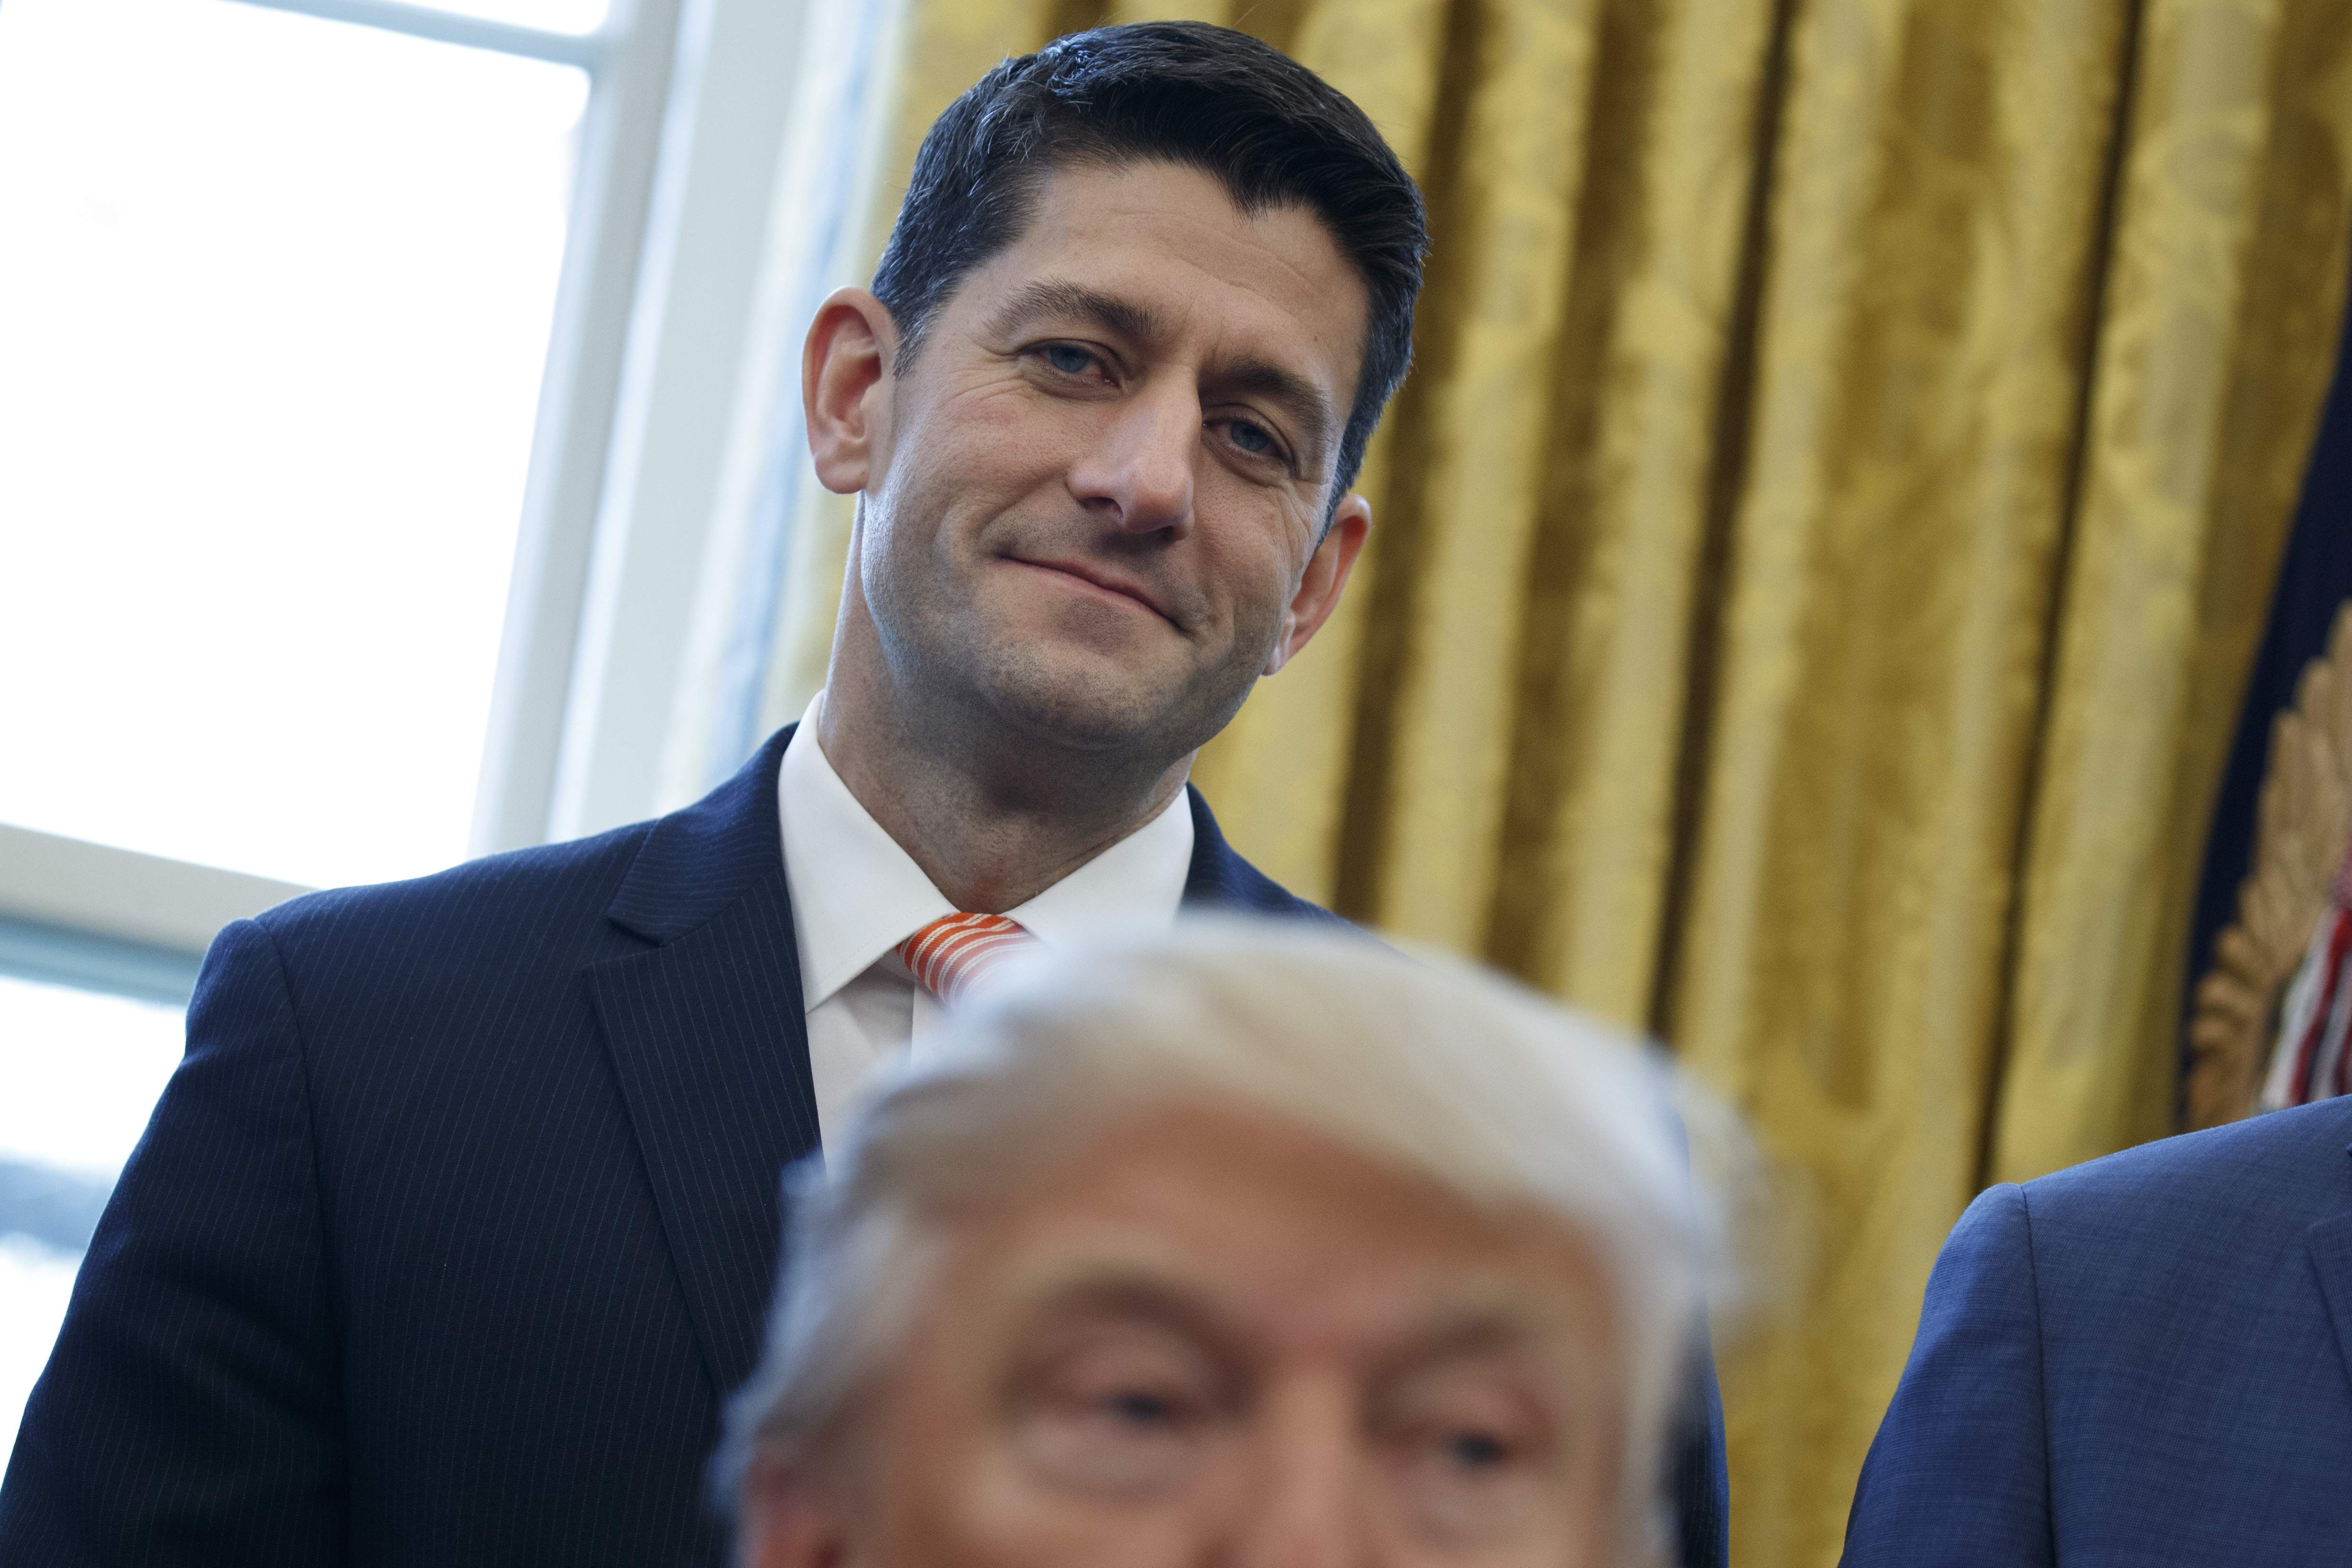 DAY 26 - In this Feb. 14, 2017, file photo, House Speaker Paul Ryan of Wis. watches as President Donald Trump signs House Joint Resolution 41, in the Oval Office of the White House in Washington. (AP Photo/Evan Vucci, File)